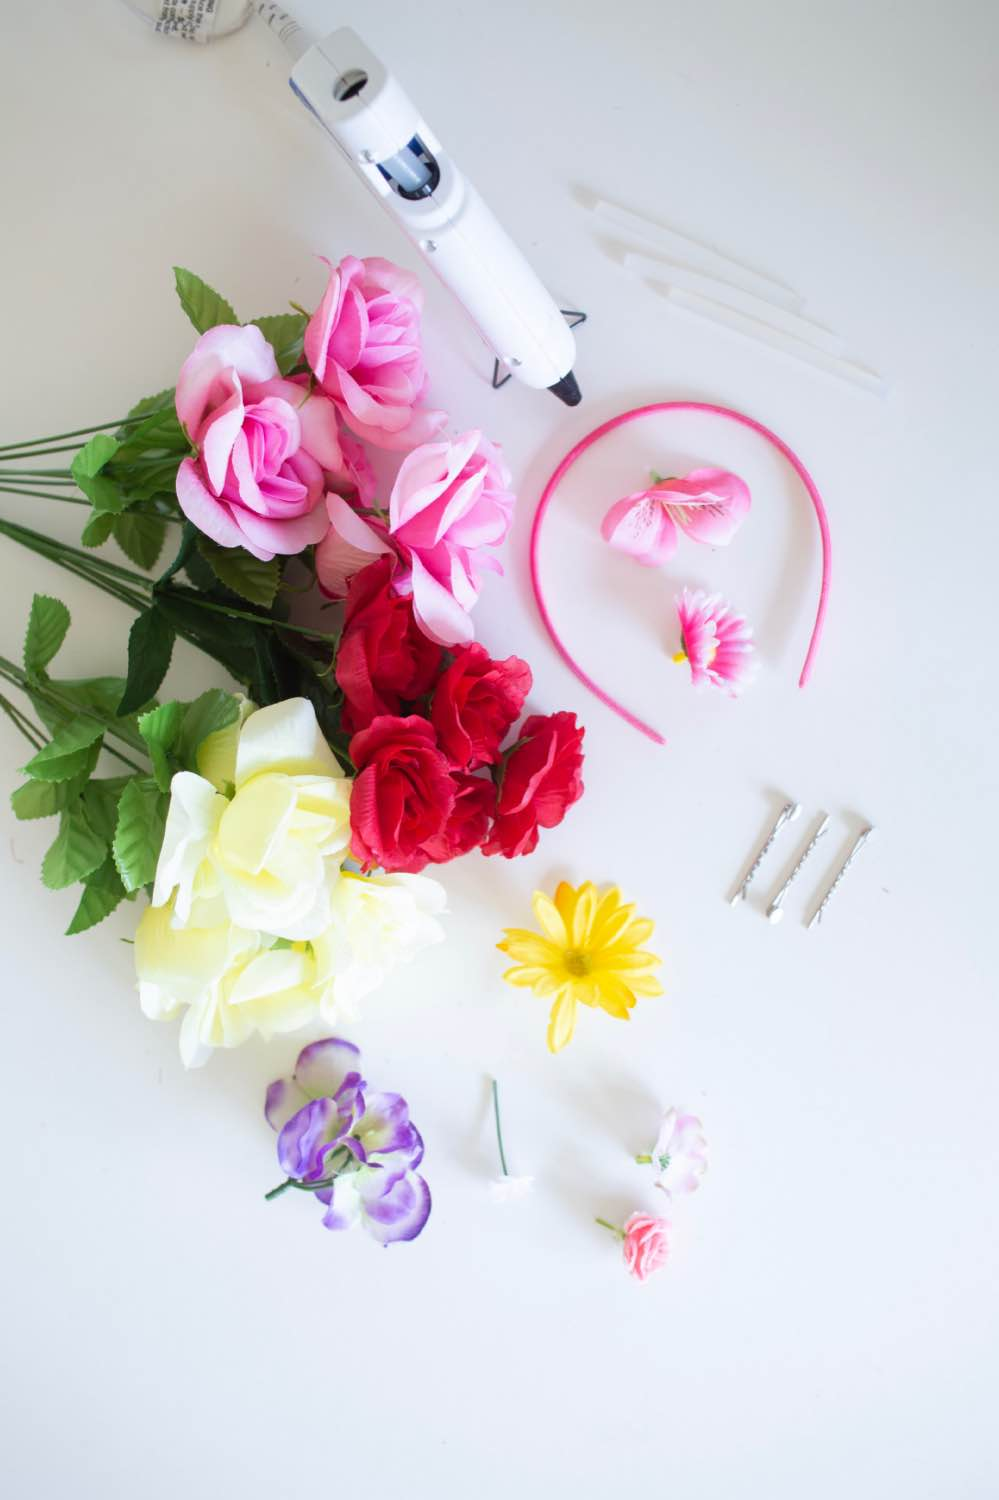 supplies to make a diy flower crown headband